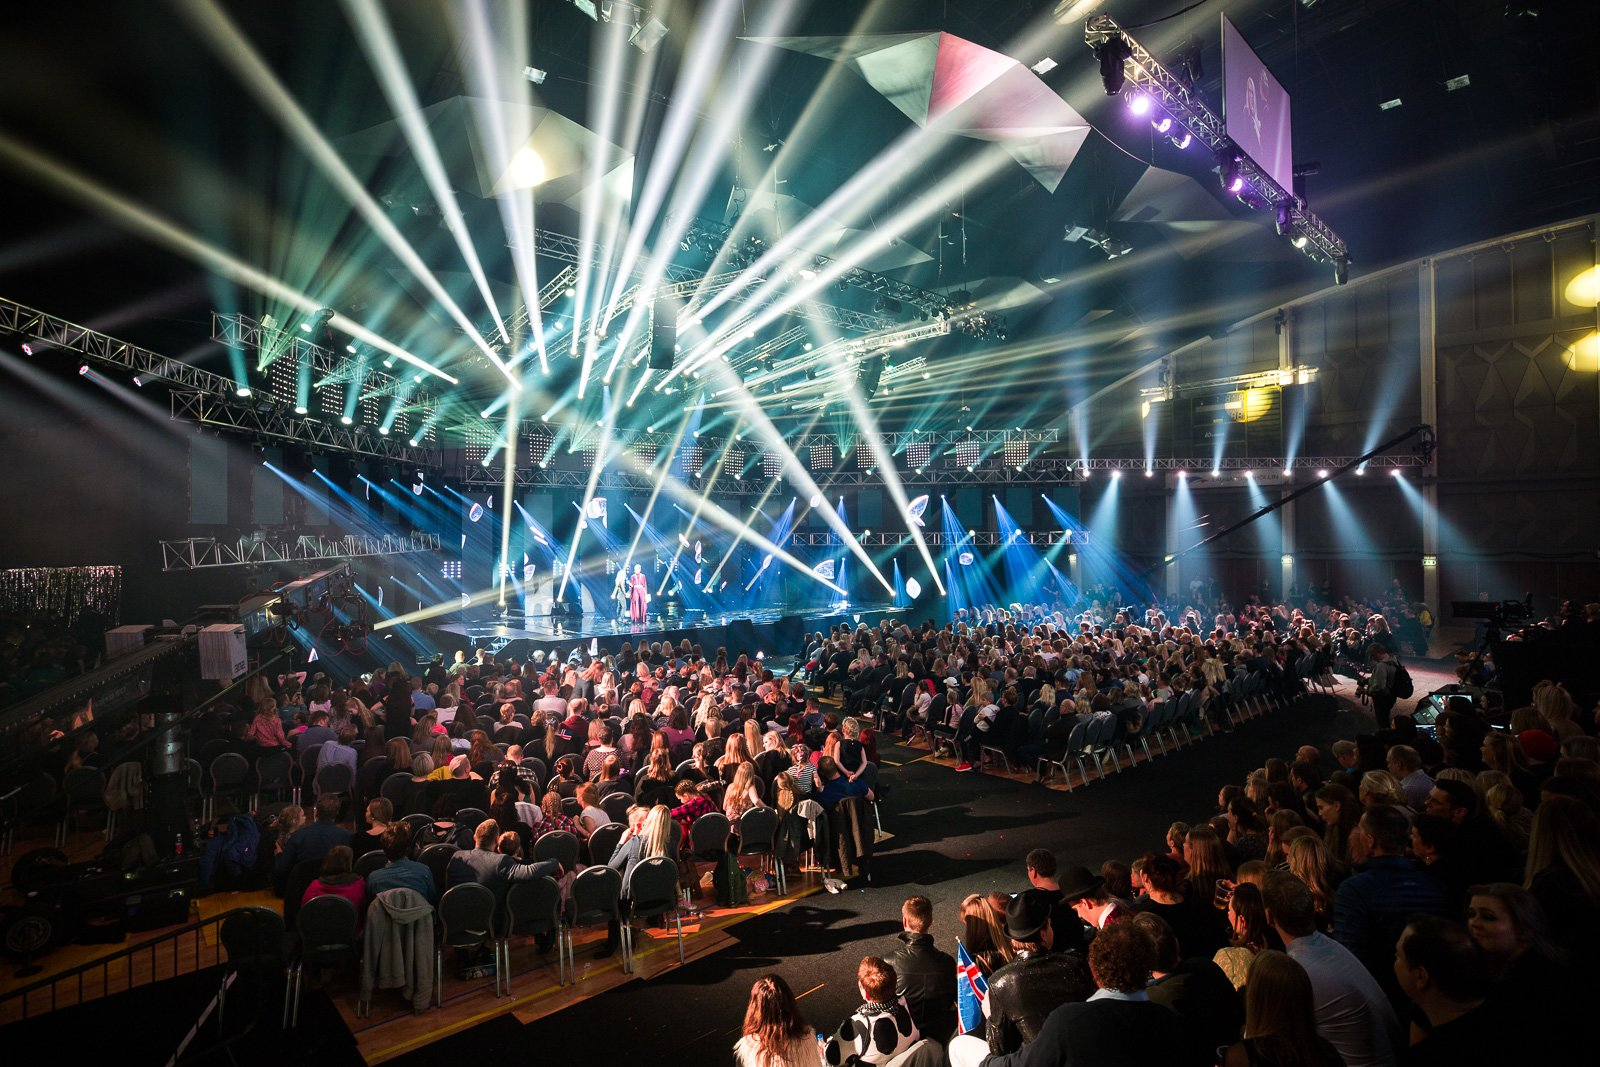 Iceland's Public Broadcasting Considering Withdrawal From Eurovision